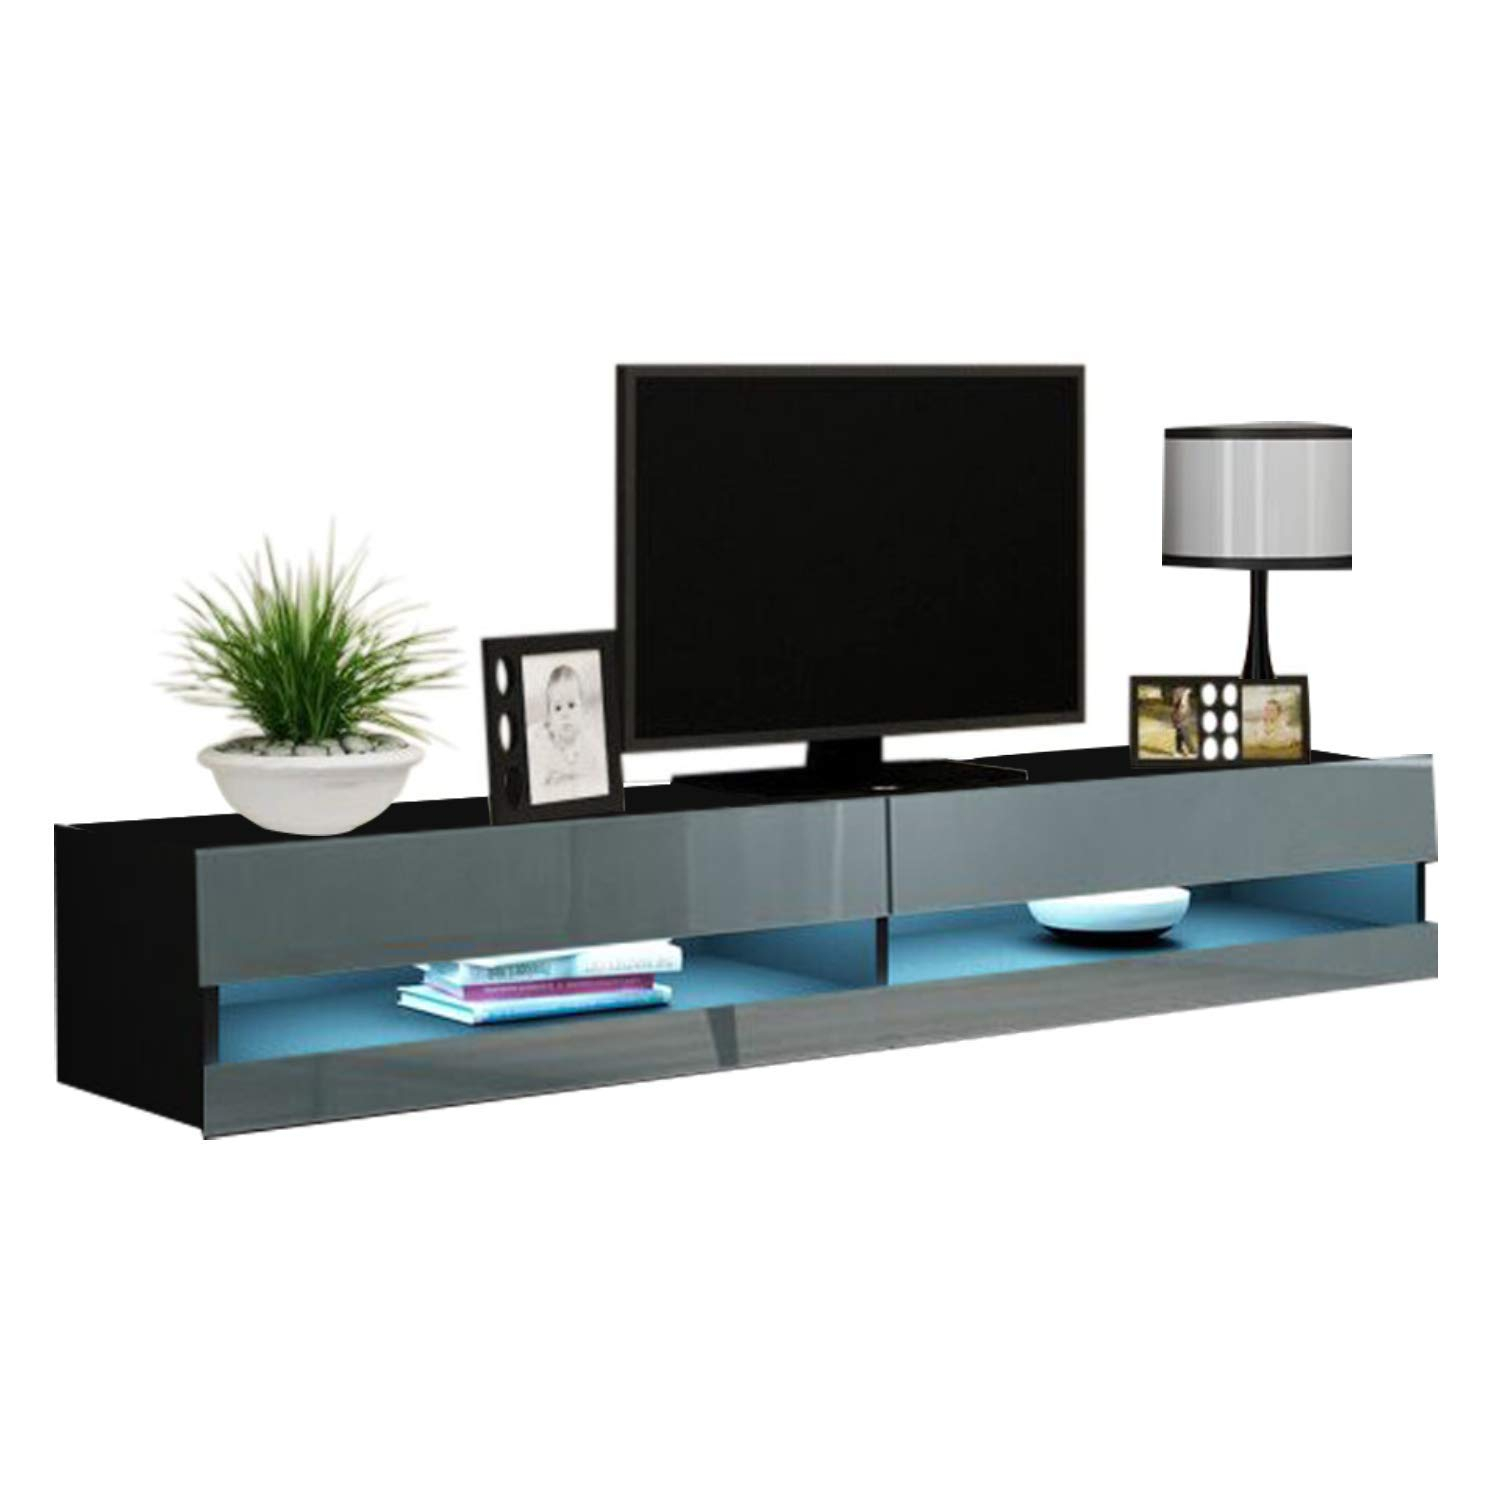 """Vigo New 180 Led Wall Mounted 71"""" Floating Tv Stand, Black Within Polar Led Tv Stands (View 13 of 15)"""